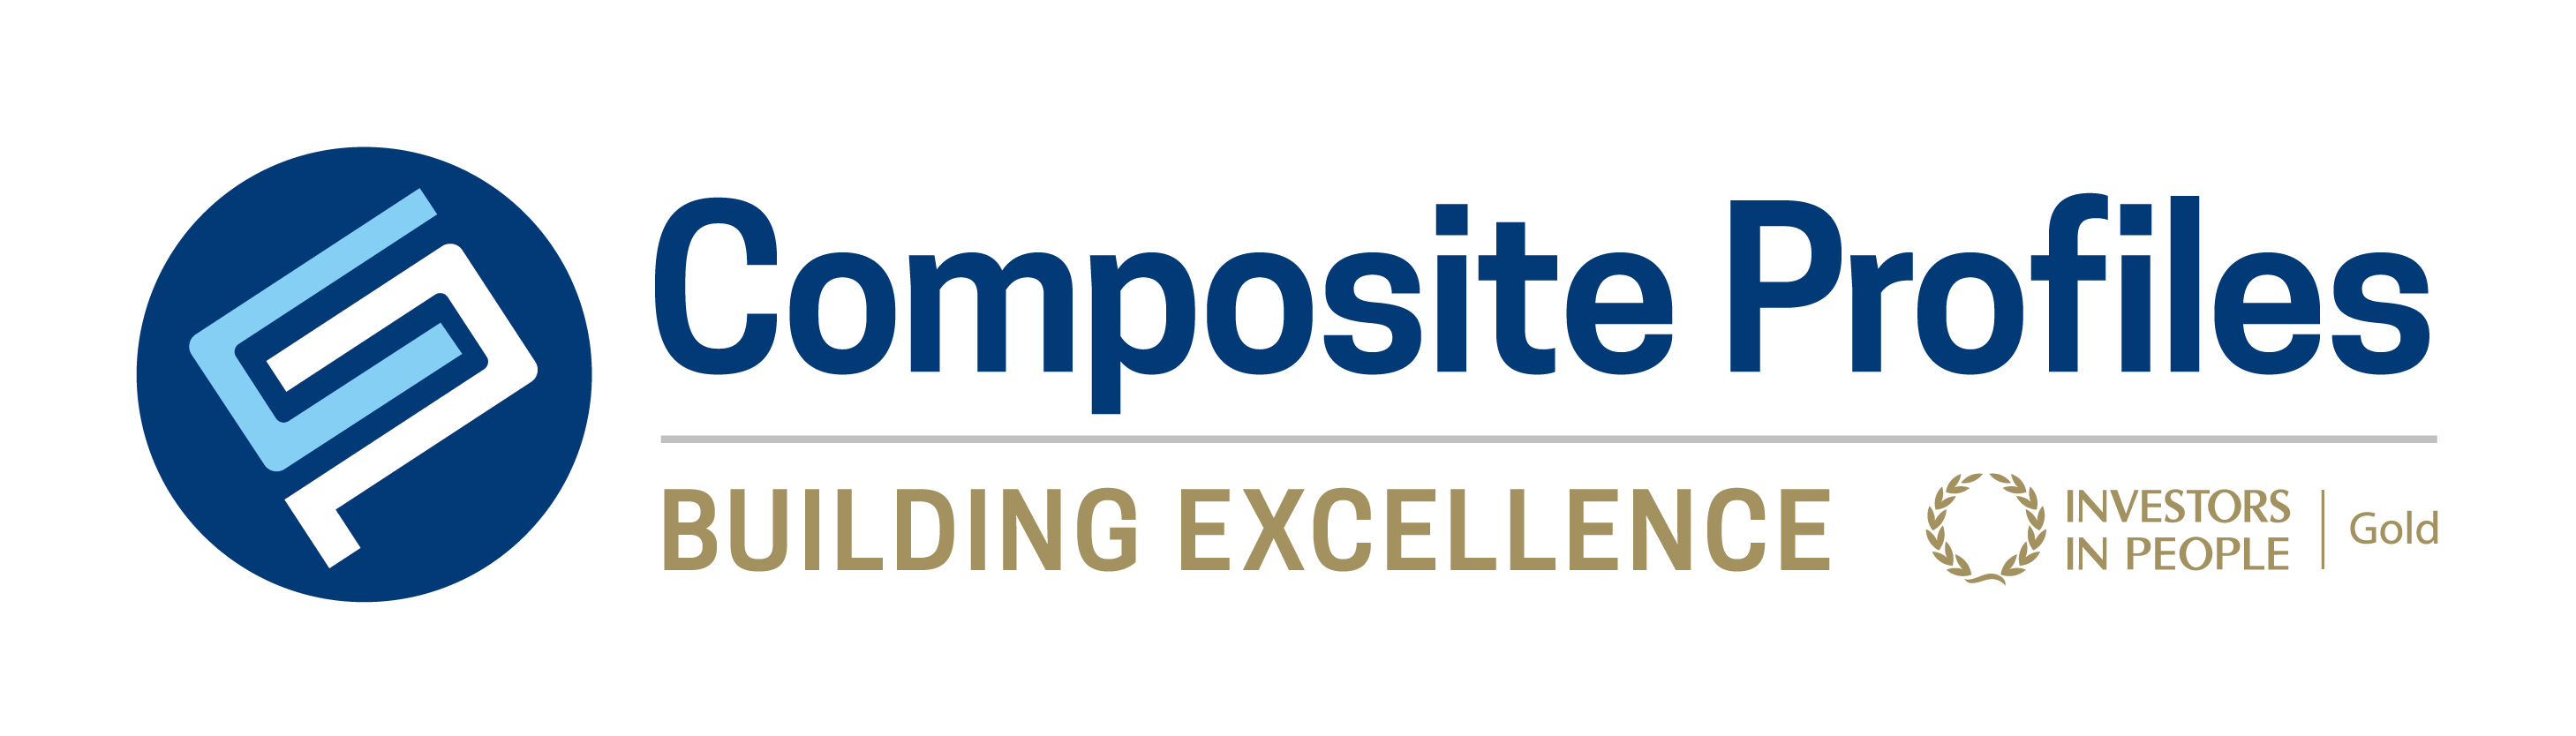 Composite Profiles UK Limited